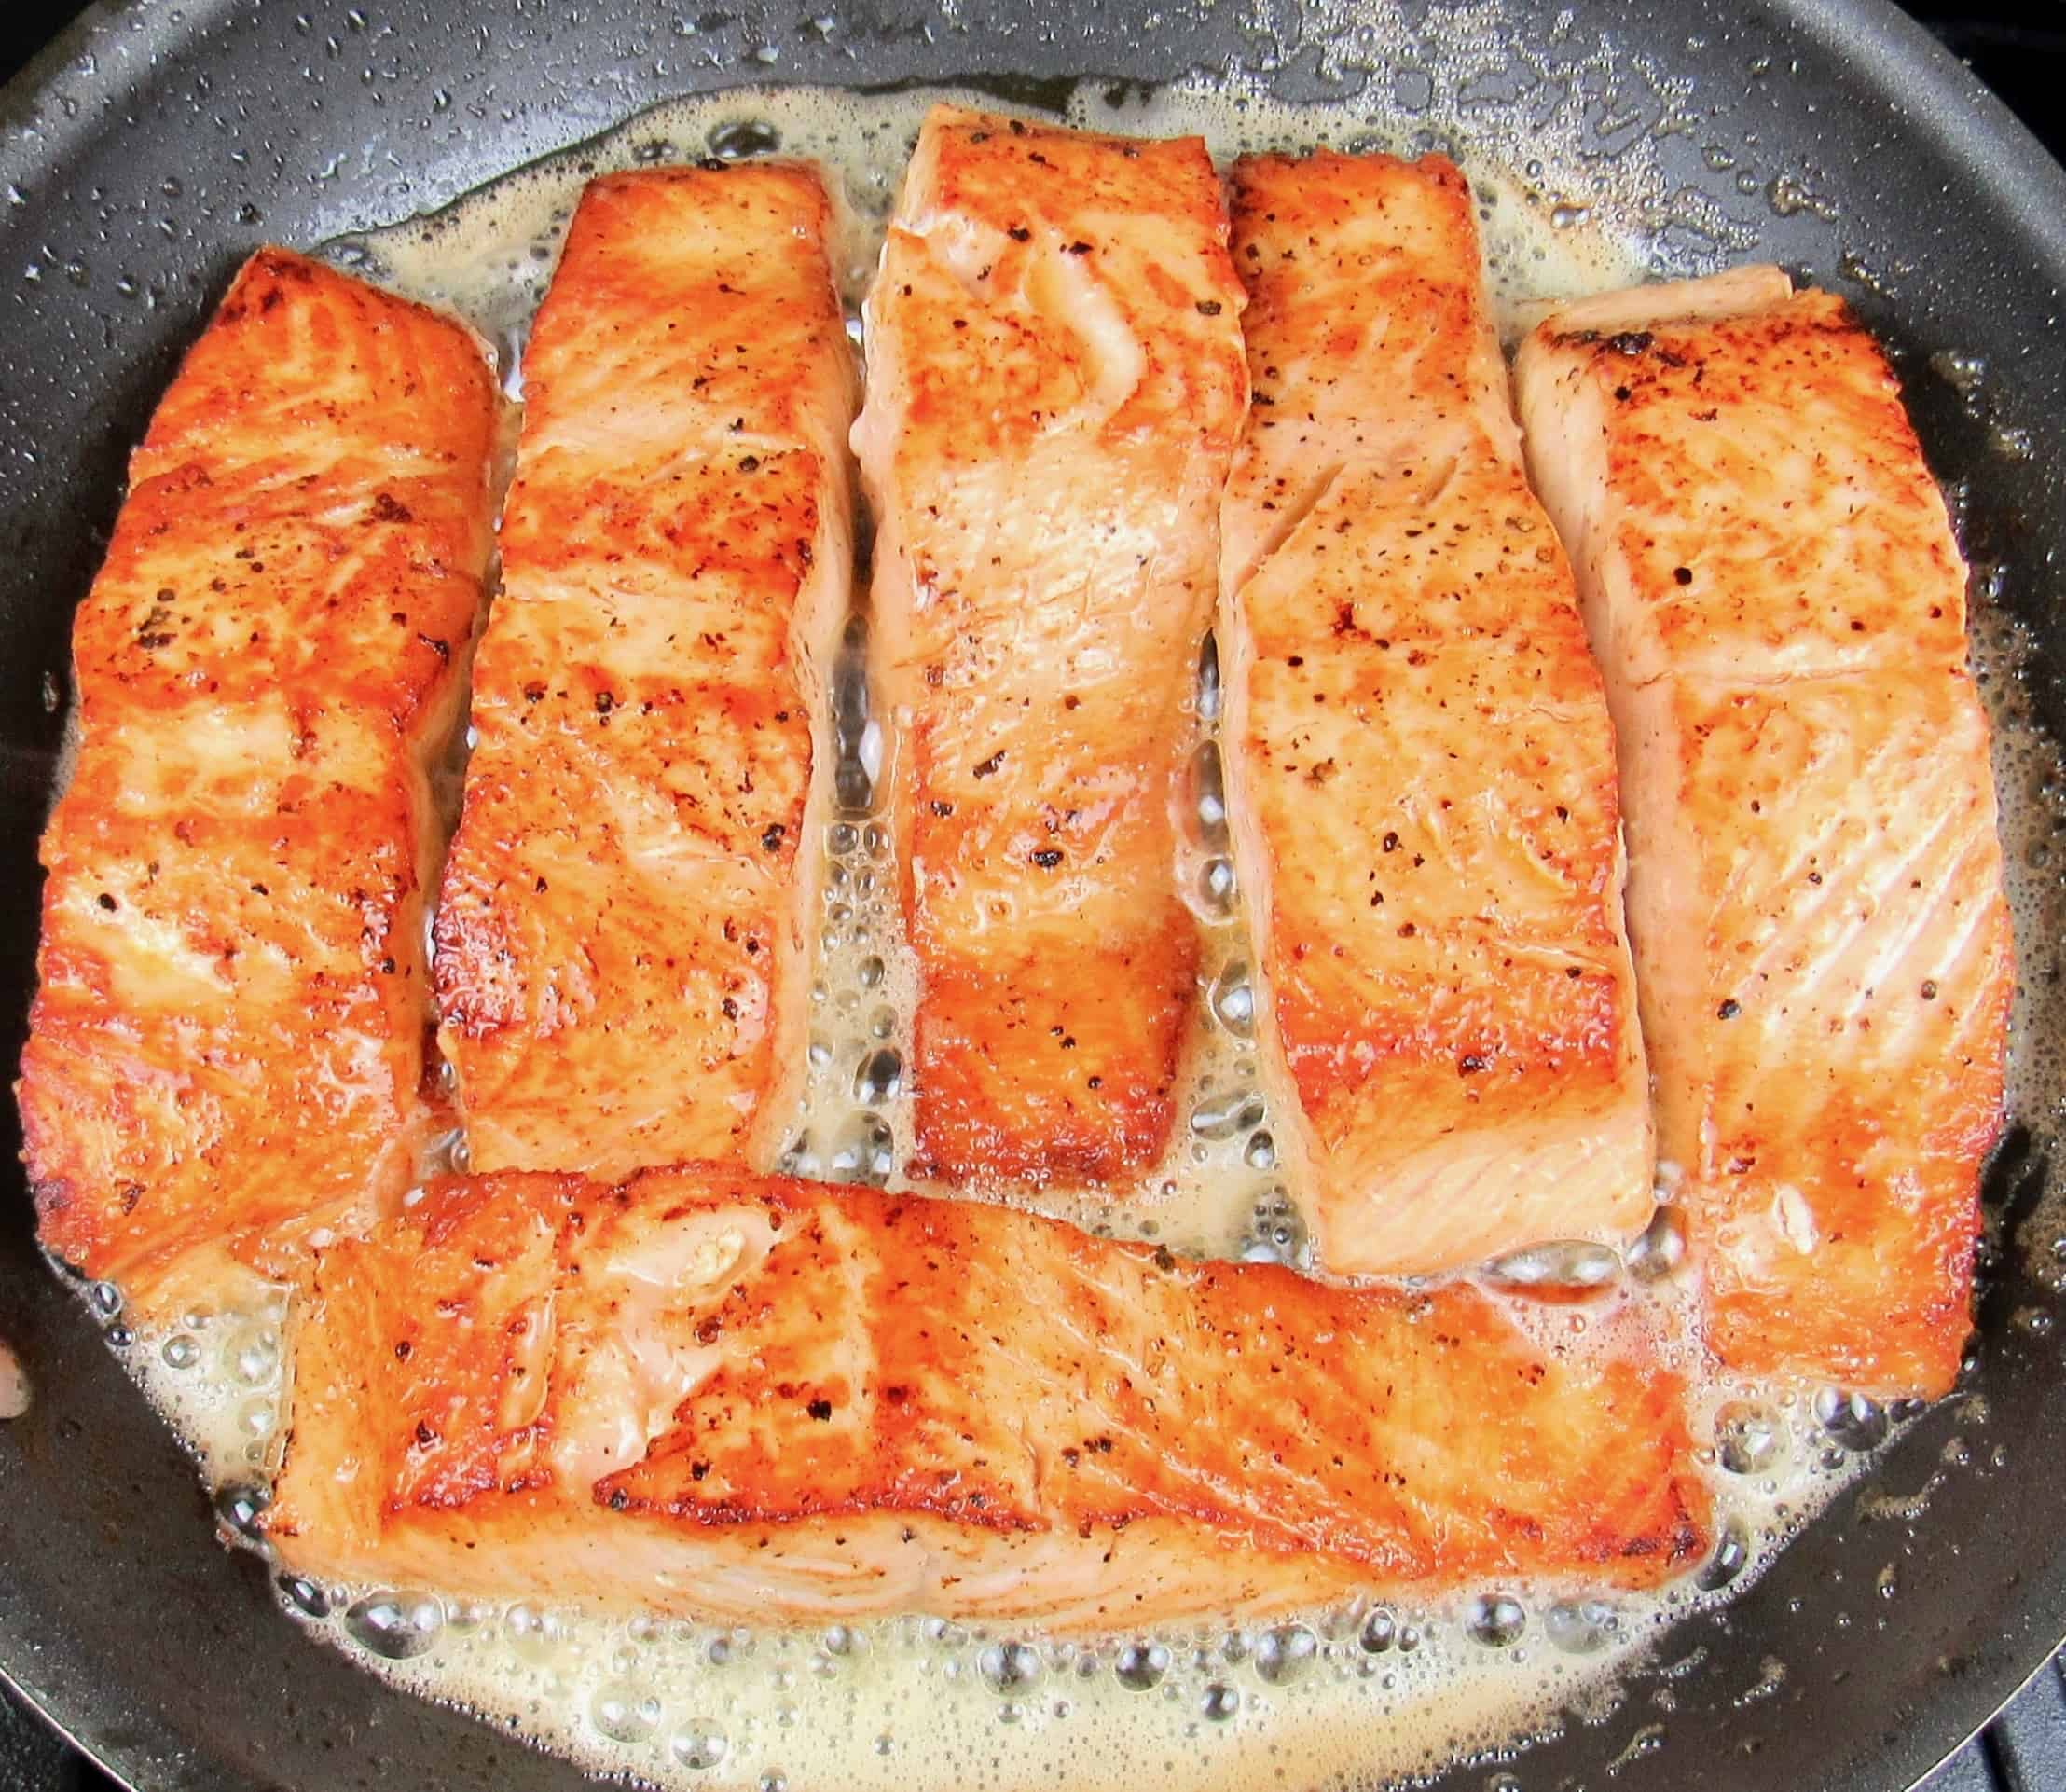 6 pieces of seared salmon in skillet